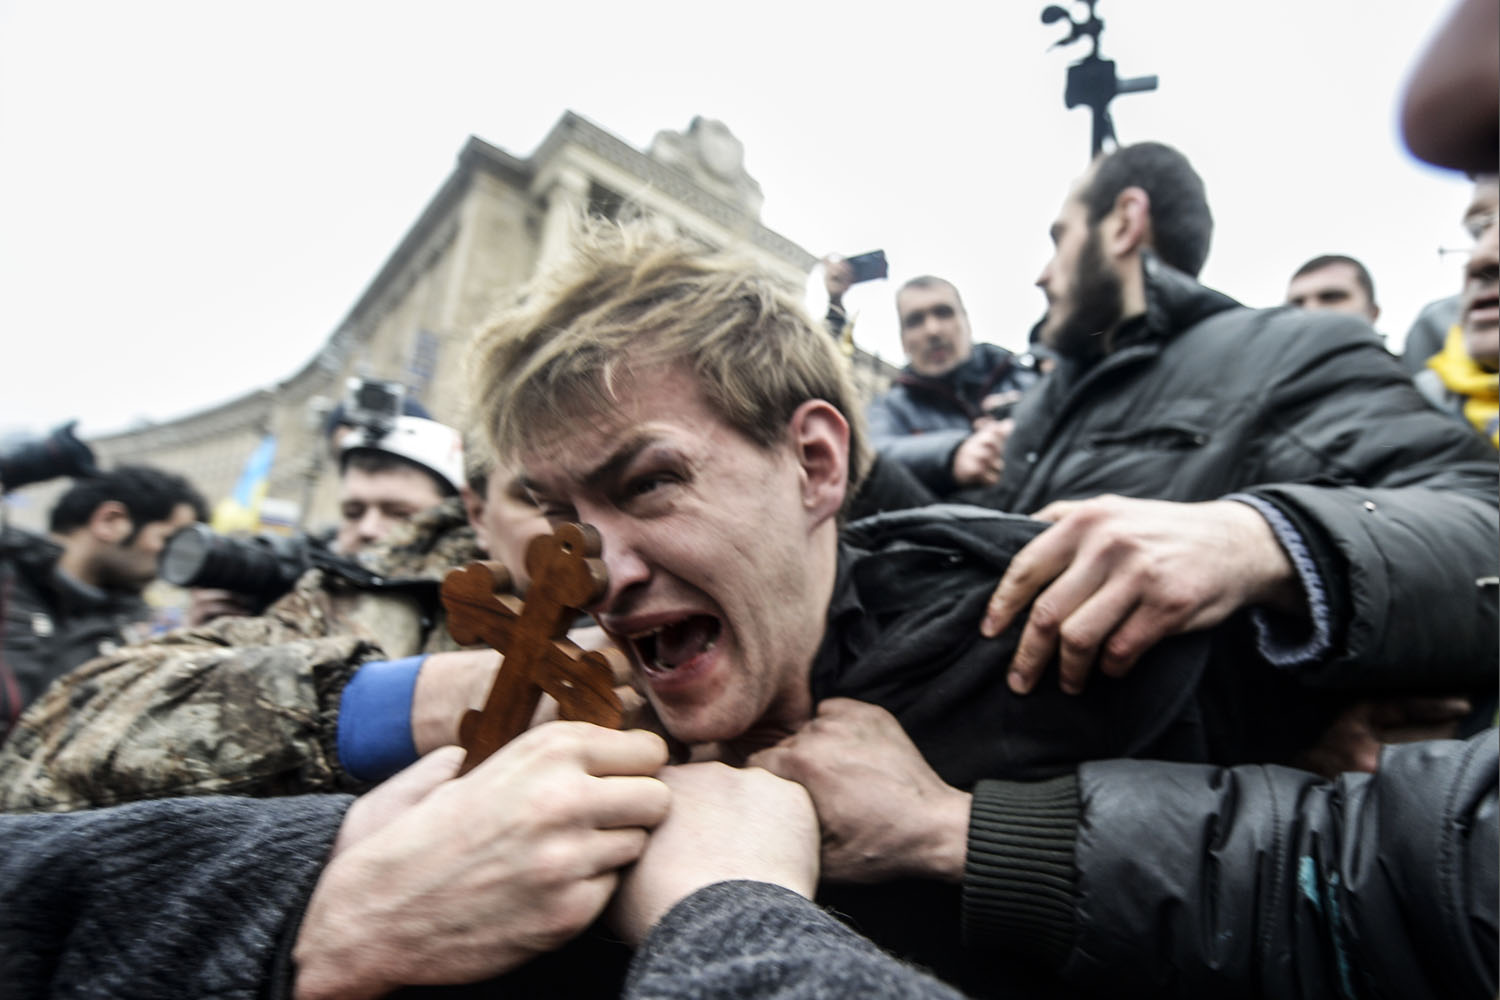 Center: An alleged sniper and member of the pro-government forces is beaten by anti-government protestors in Kiev, Ukraine, Feb. 22, 2014.